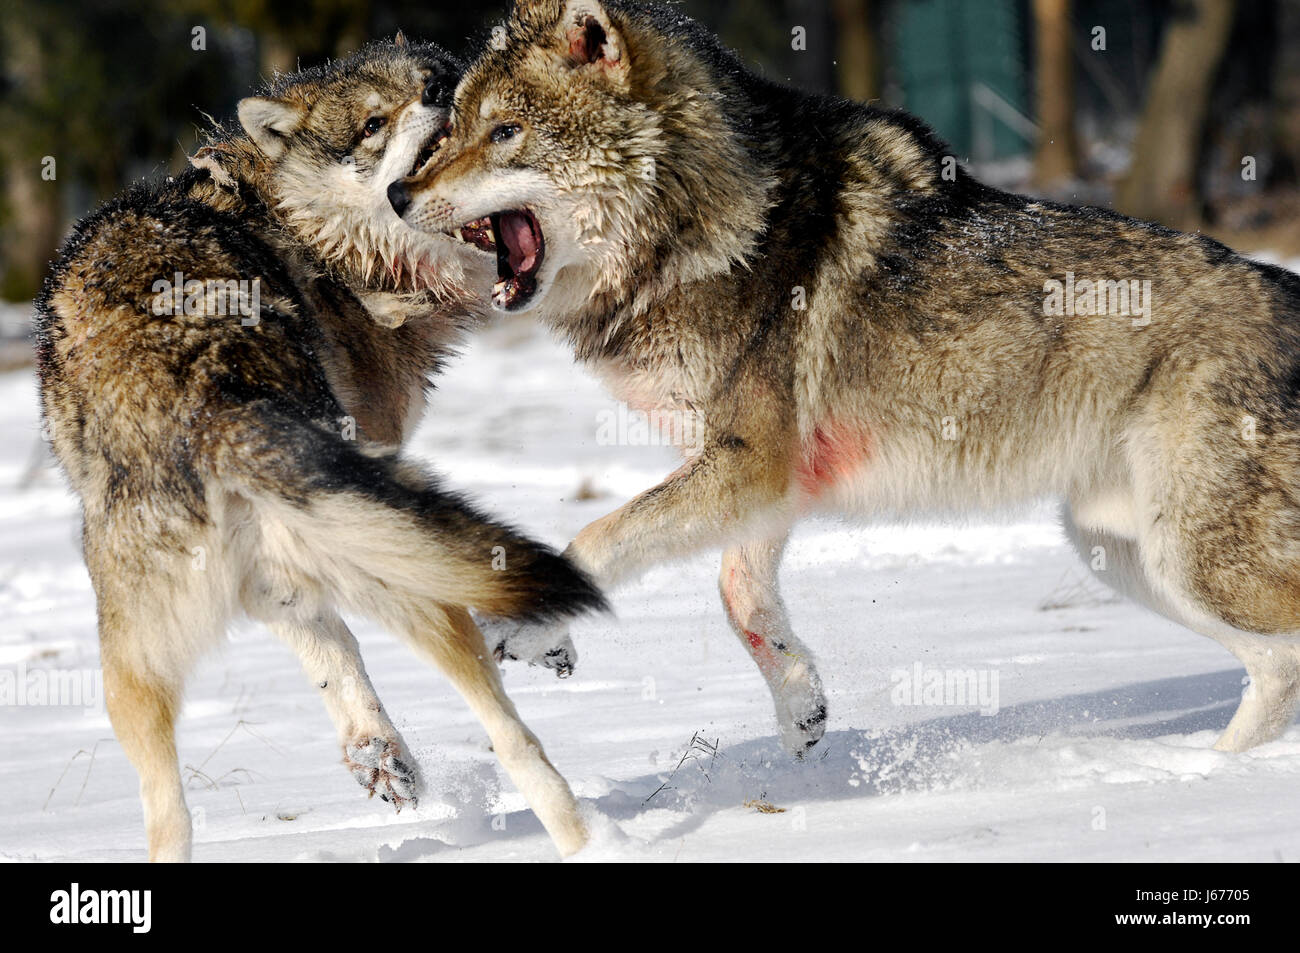 Fight Fighting Winter Wolf Wolves Hierarchy Battles Snow Fight Stock Photo Alamy